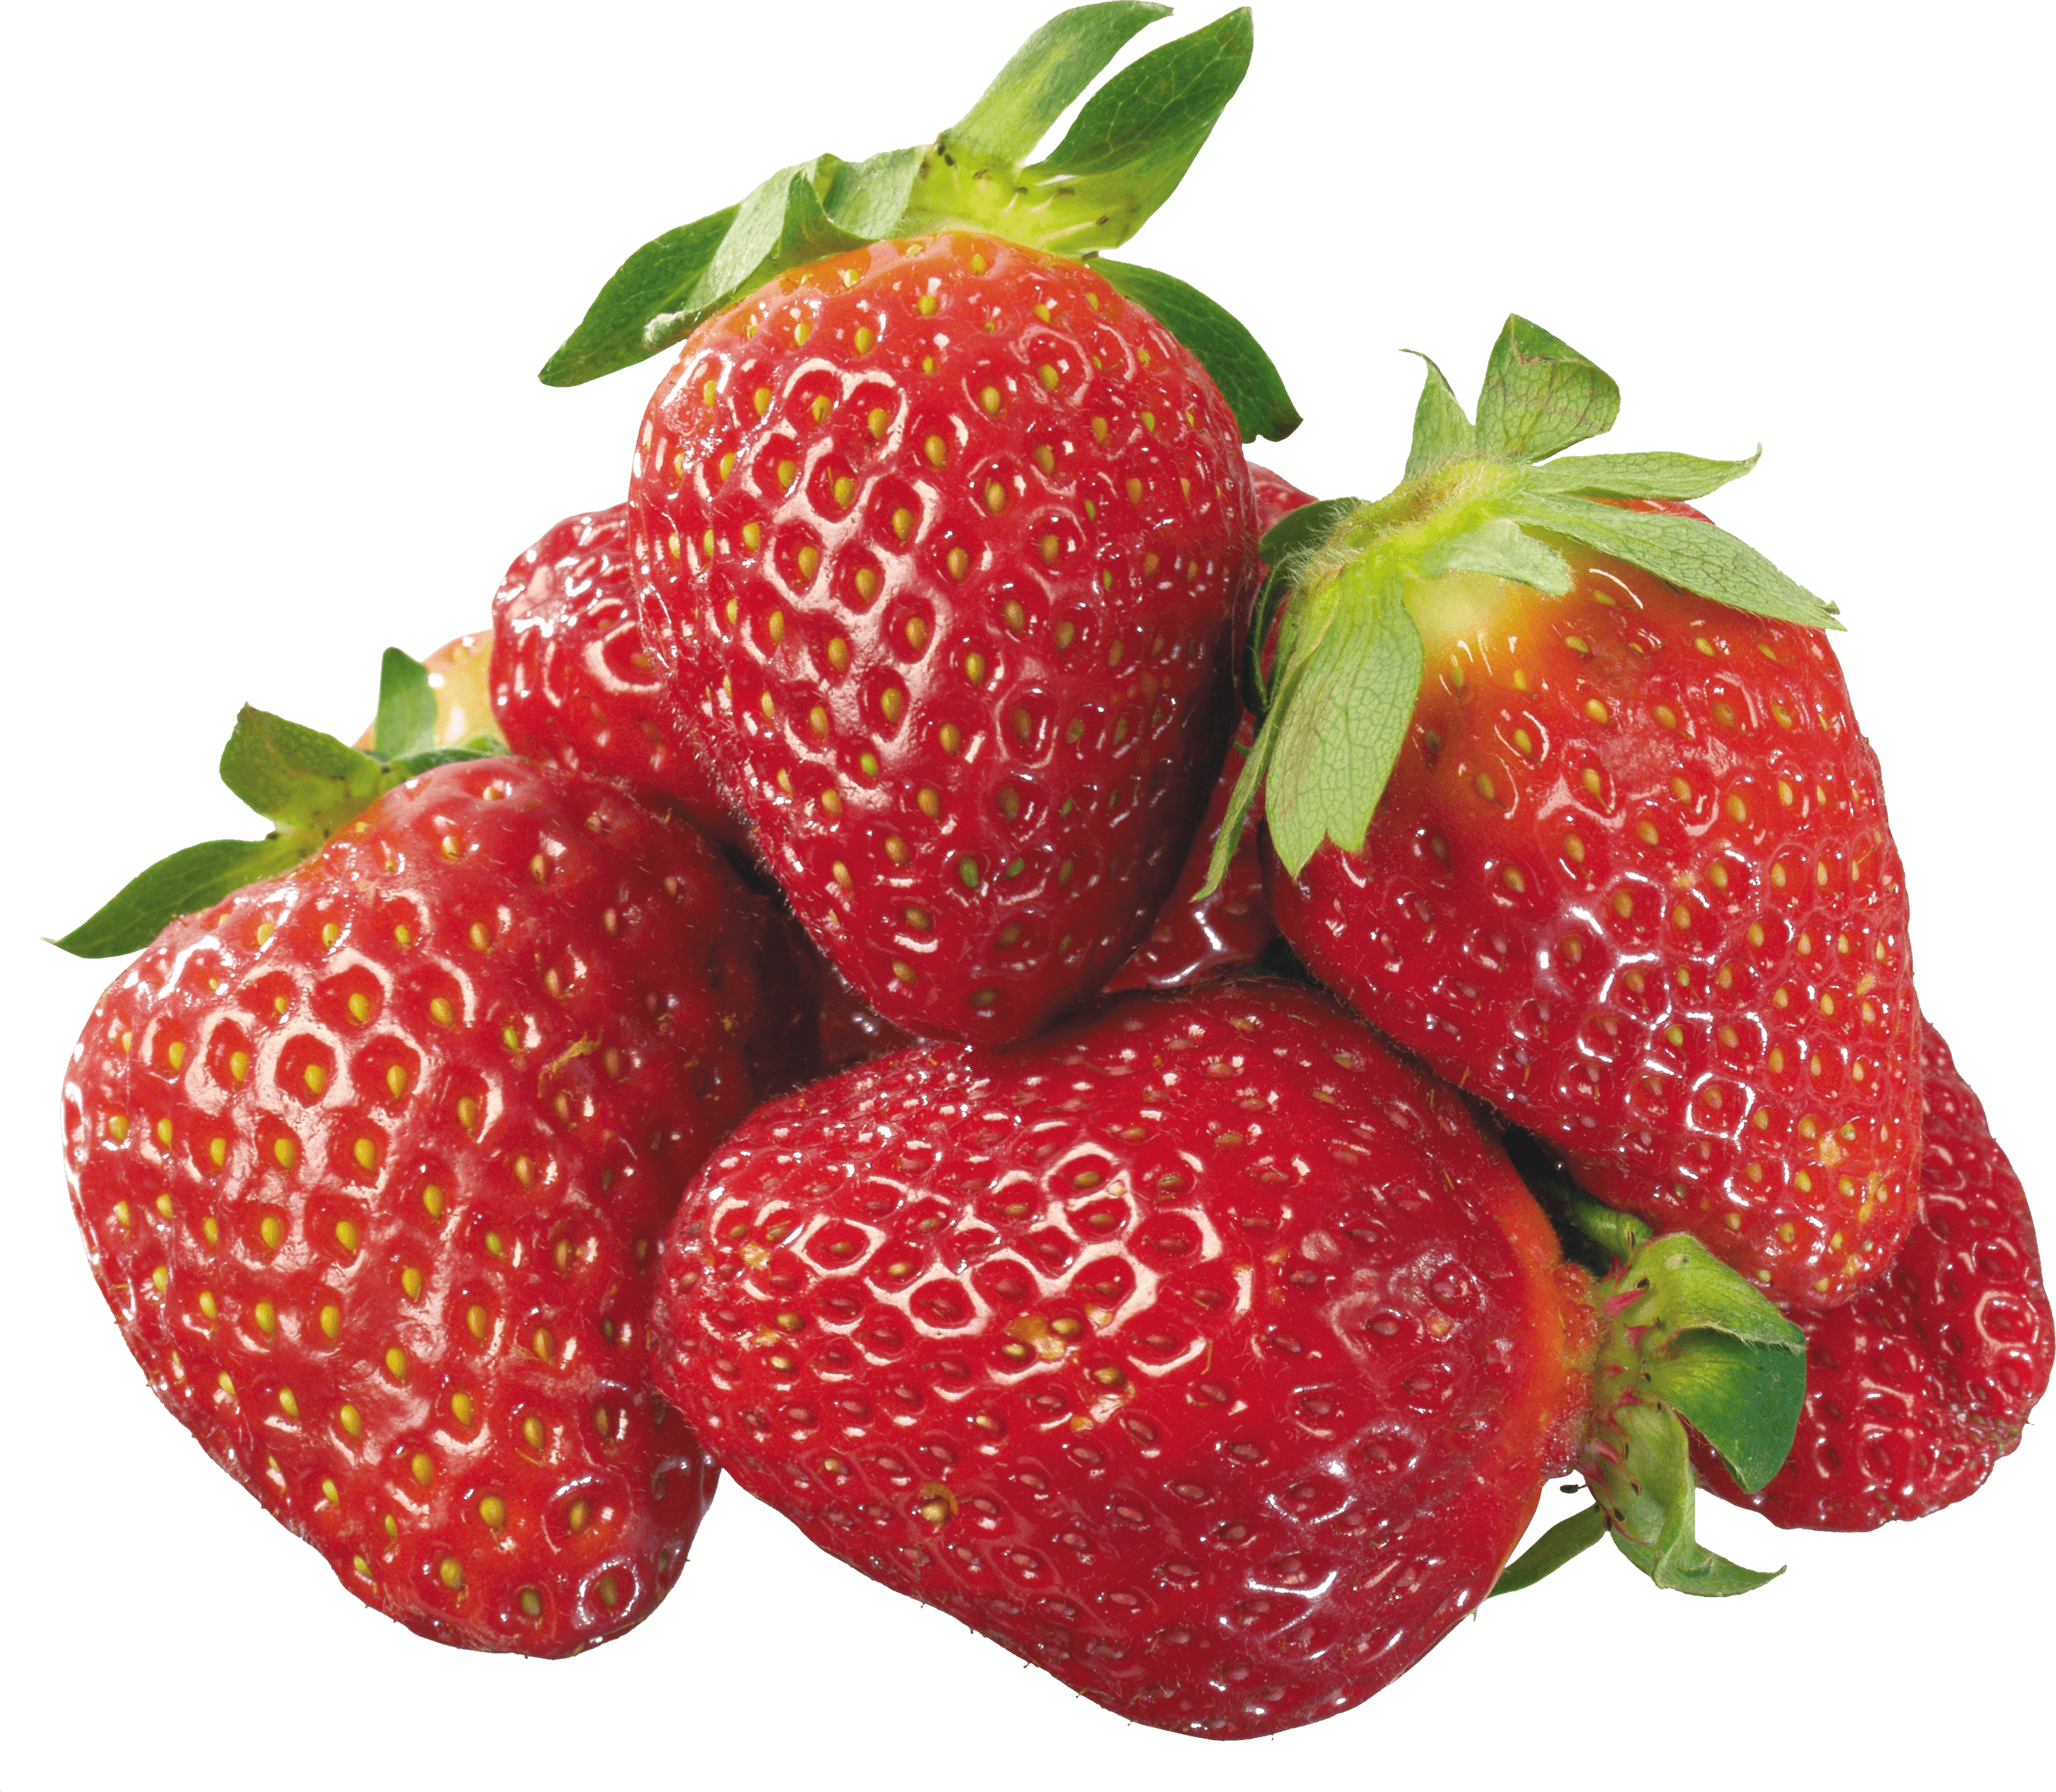 Strawberries png. Group of transparent stickpng